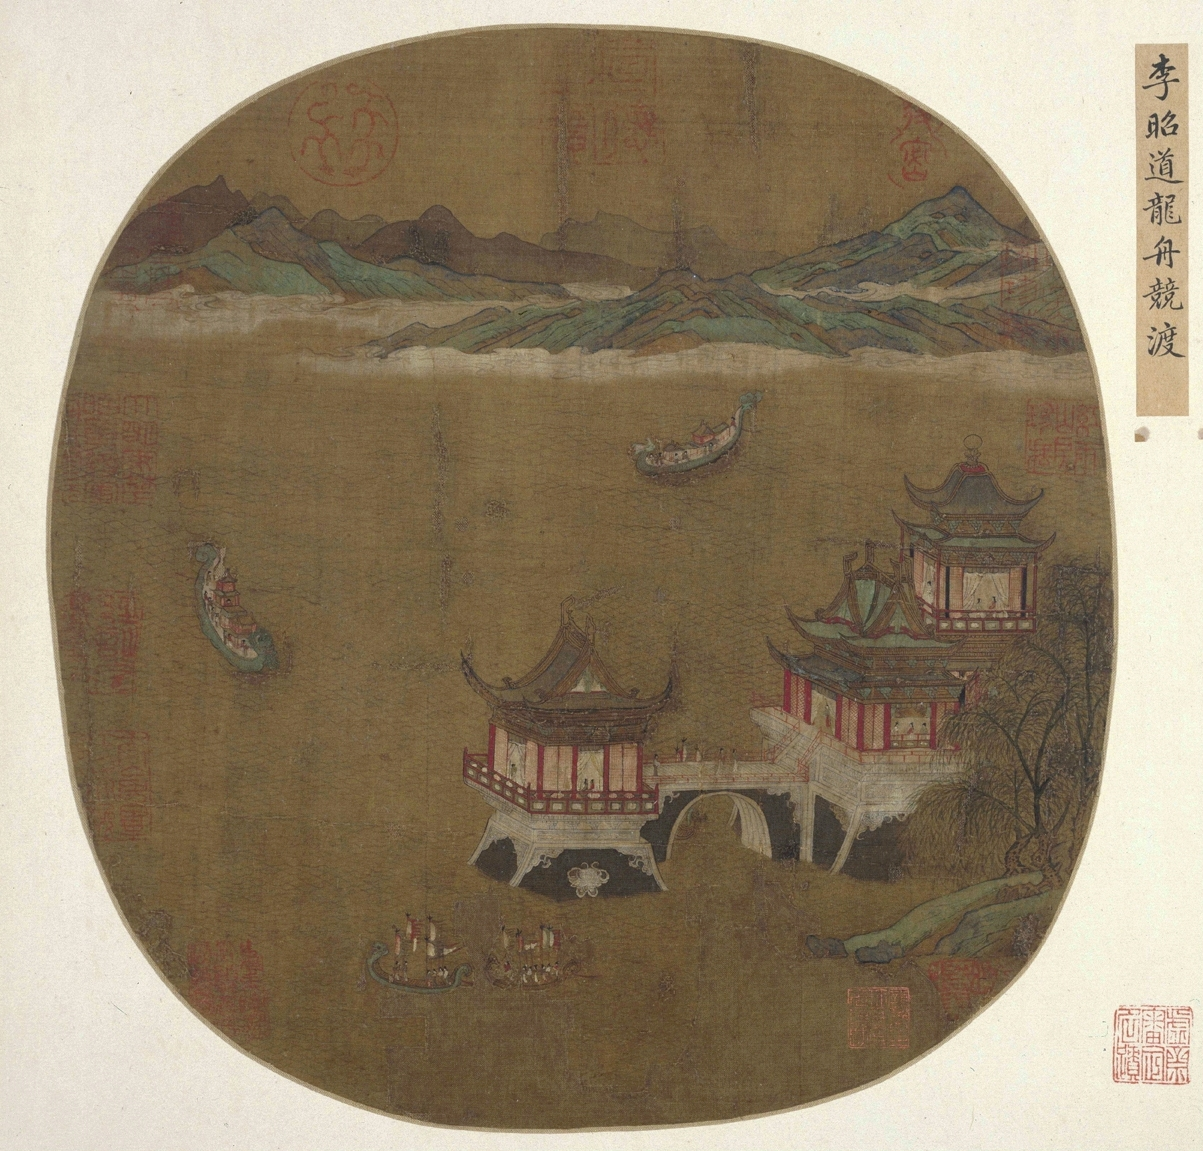 https://upload.wikimedia.org/wikipedia/commons/5/5b/Attributed_to_Li_Zhaodao_Dragon-boat_Race._Palace_Museum%2C_Beijing.jpg